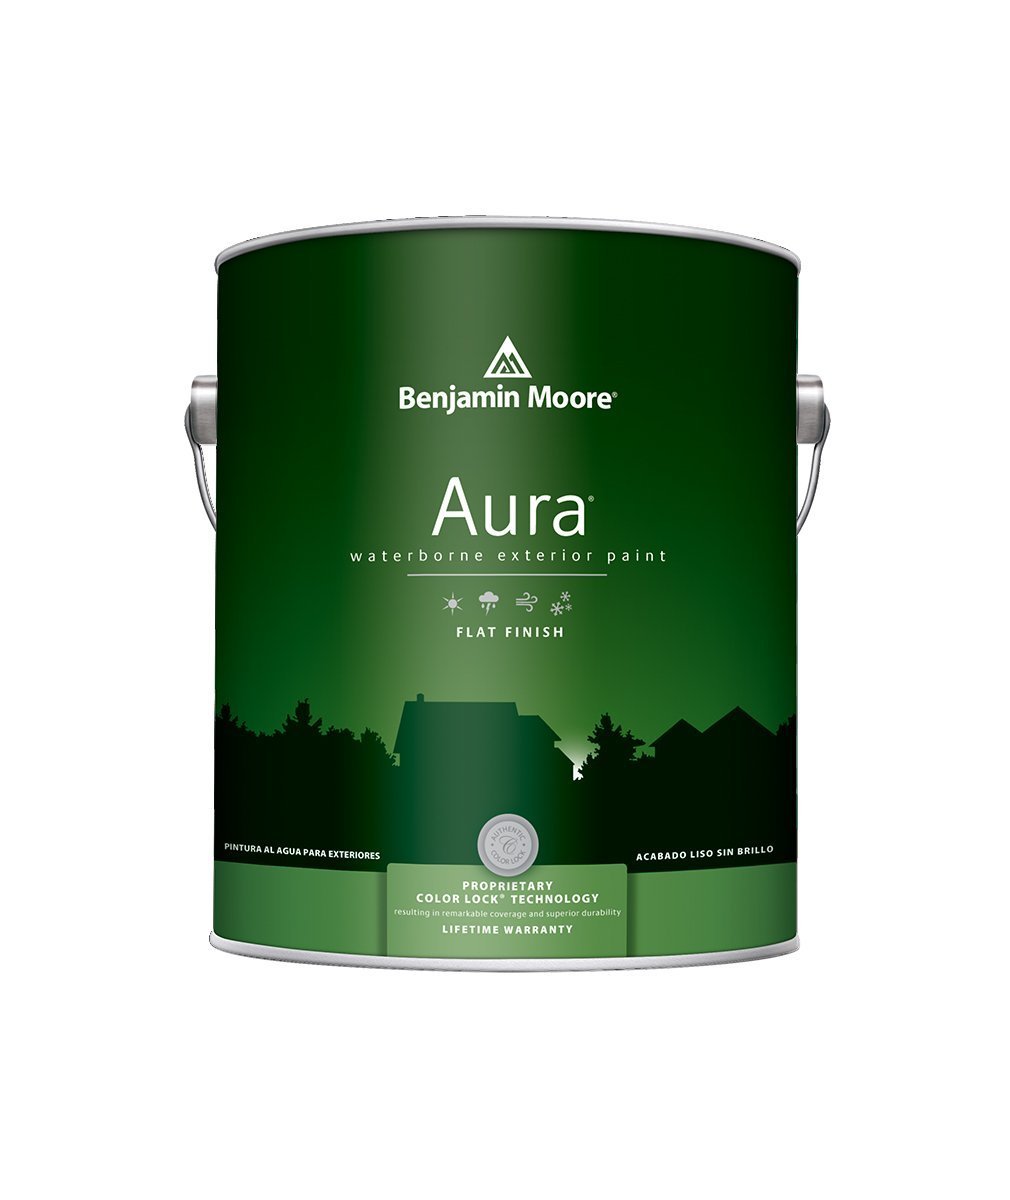 Benjamin Moore Aura Exterior Flat Paint , available at Johnson Paint & Maine Paint in MA, NH & ME.